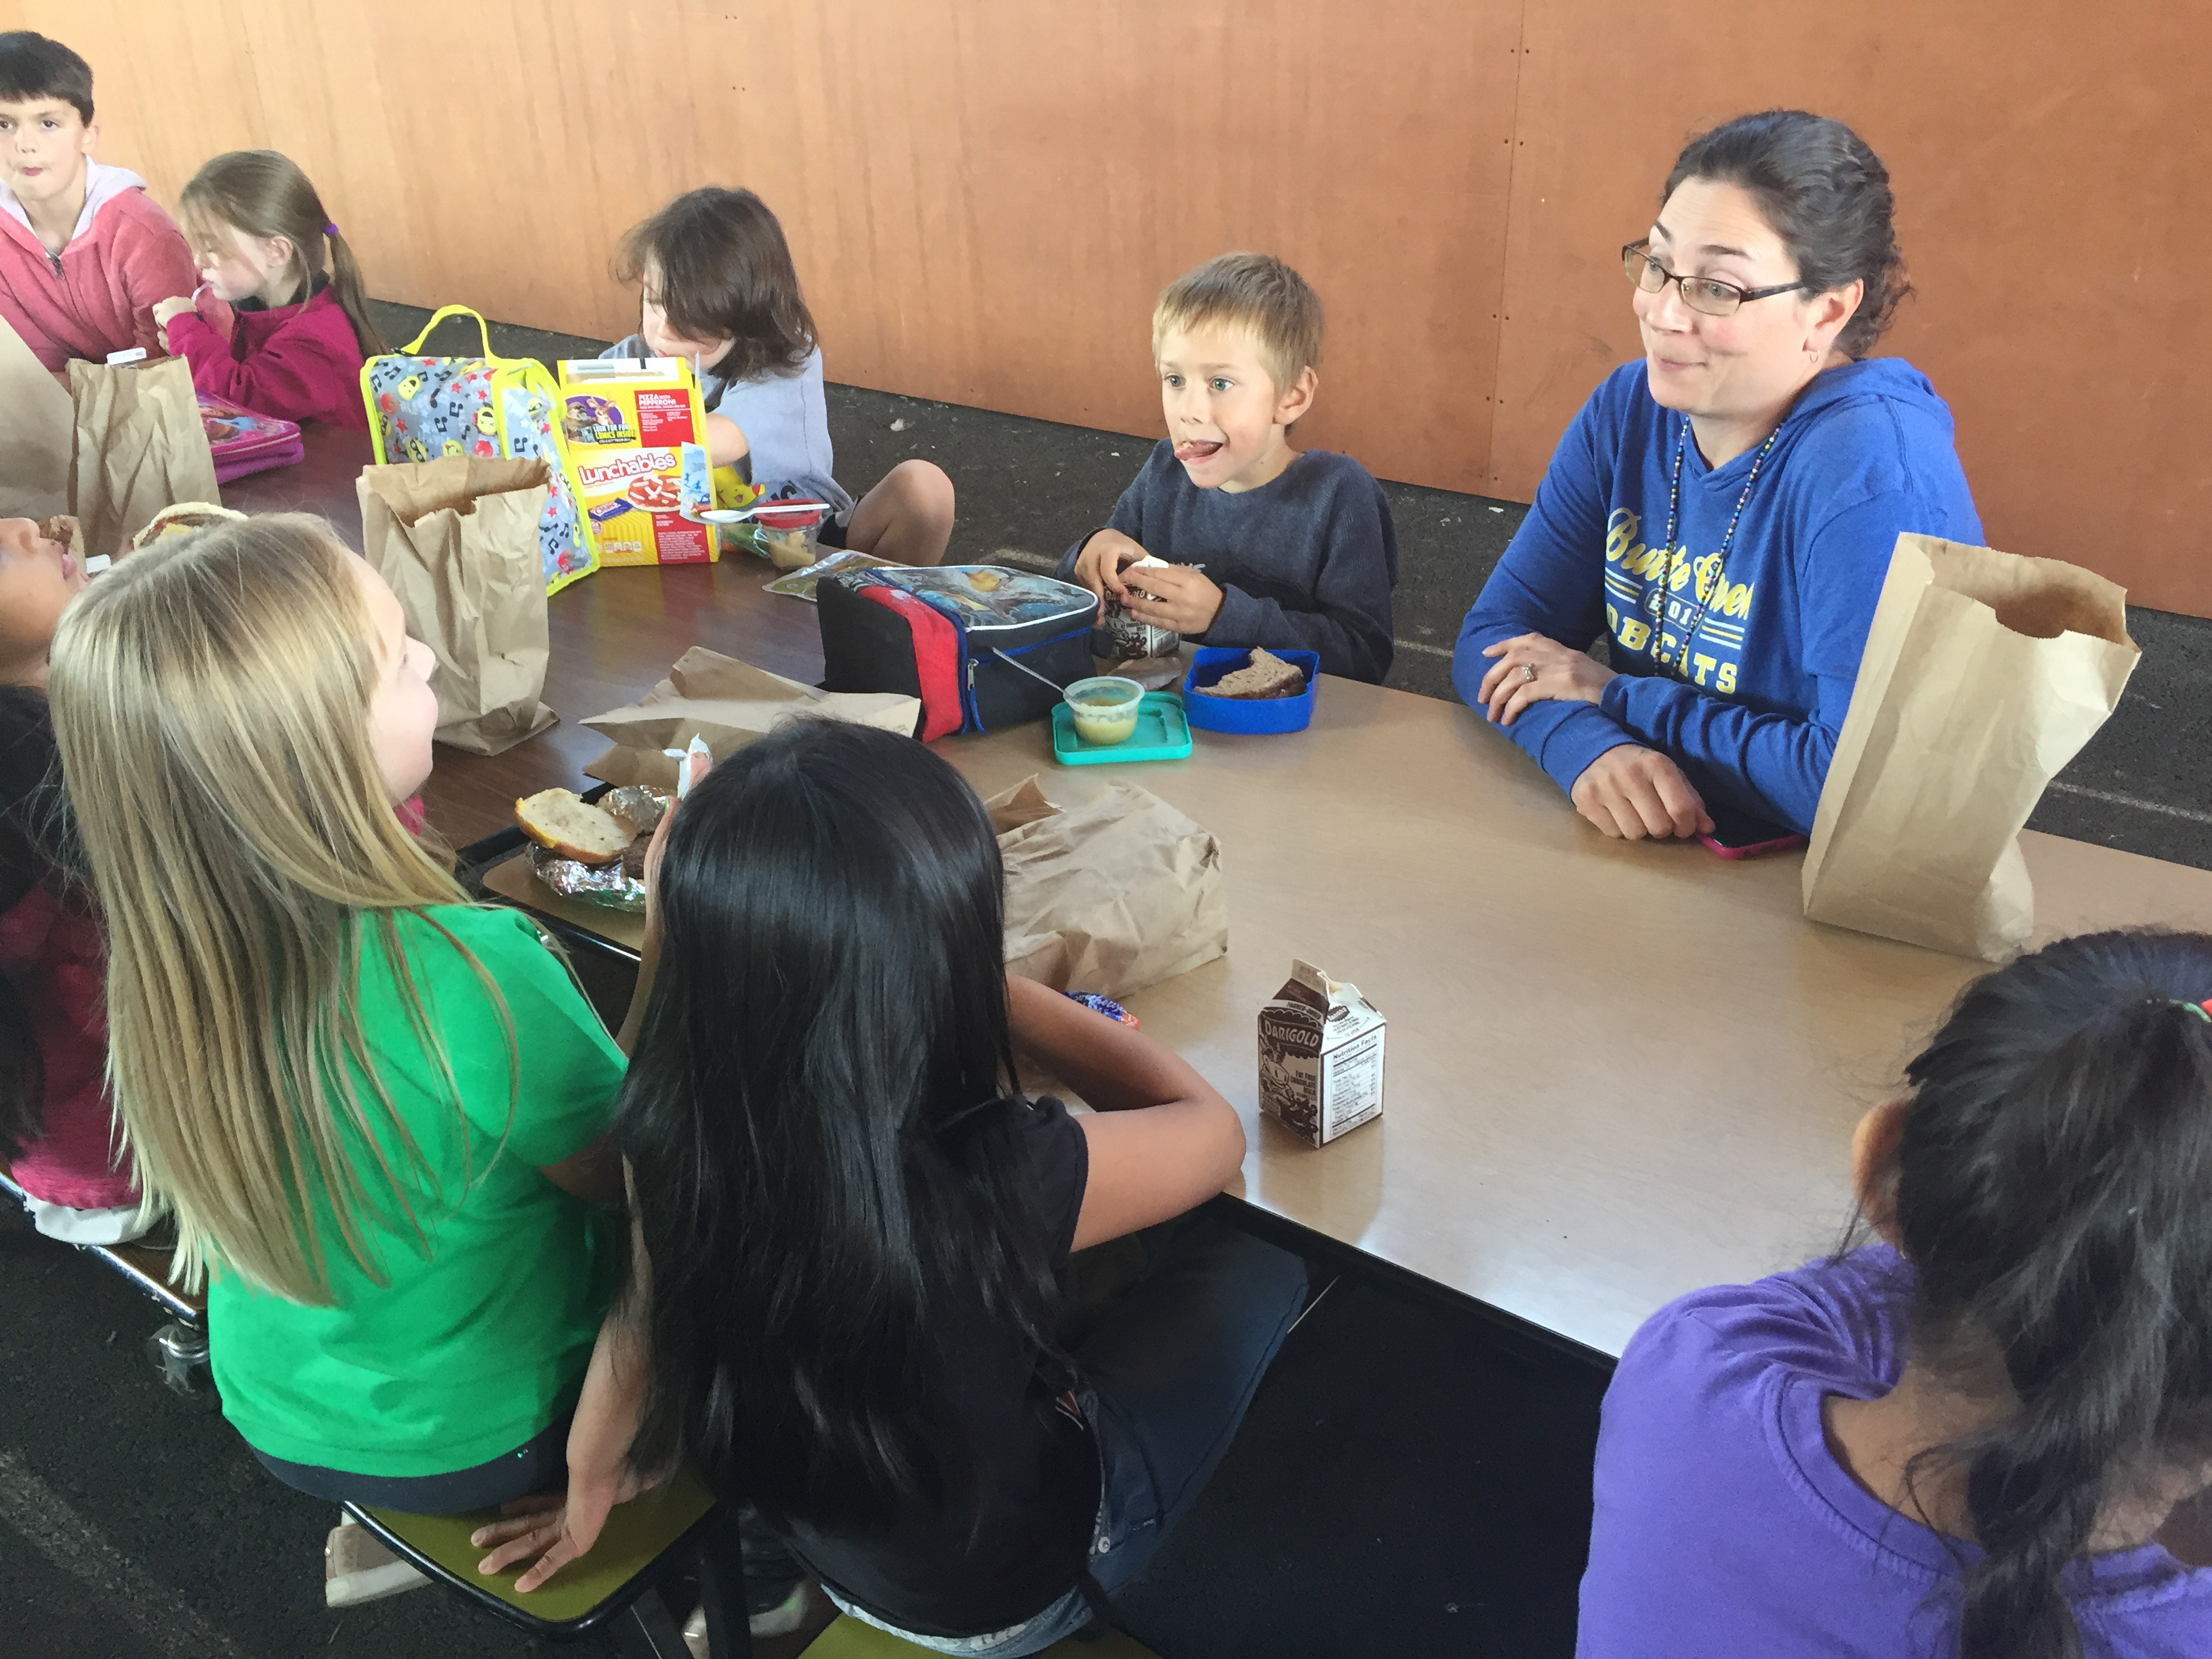 Butte Creek principal Therese Gerlits visits with students during lunch.